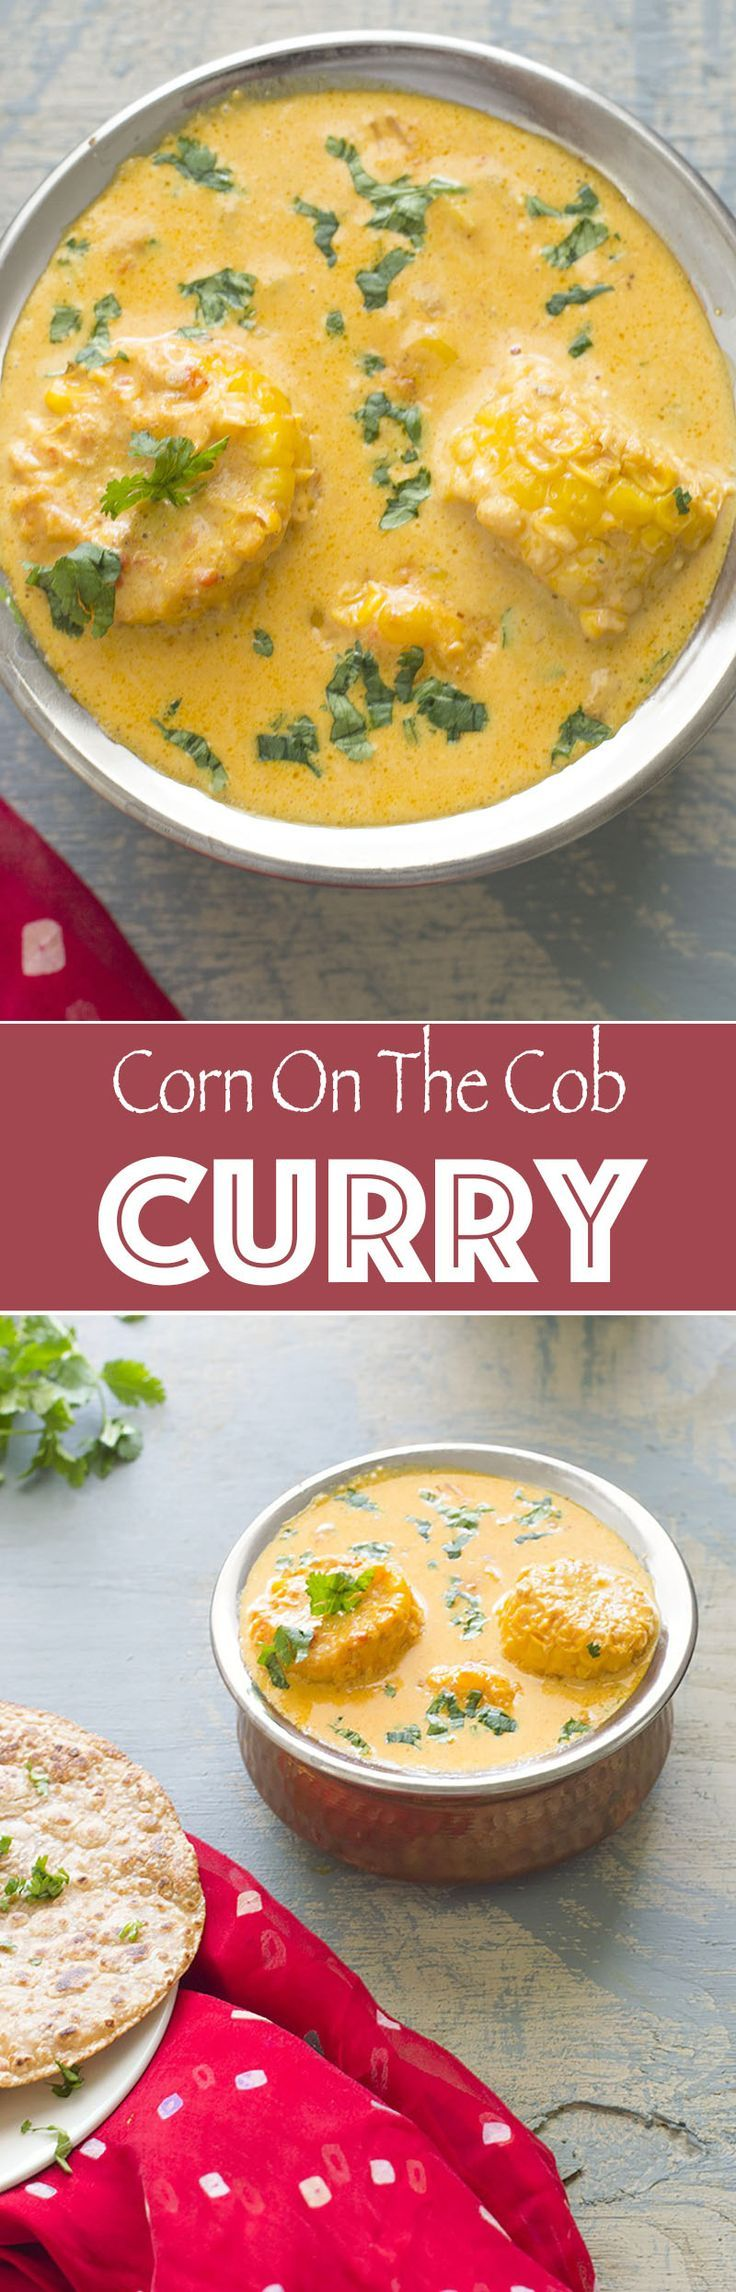 Corn on the cob curry is the perfect dinner recipe for the whole family. There are vegan options in this recipe, so, anyone can enjoy it. The best way to cook the corn is to pressure cook it. Add indian spices and serve with naan or basmati rice.